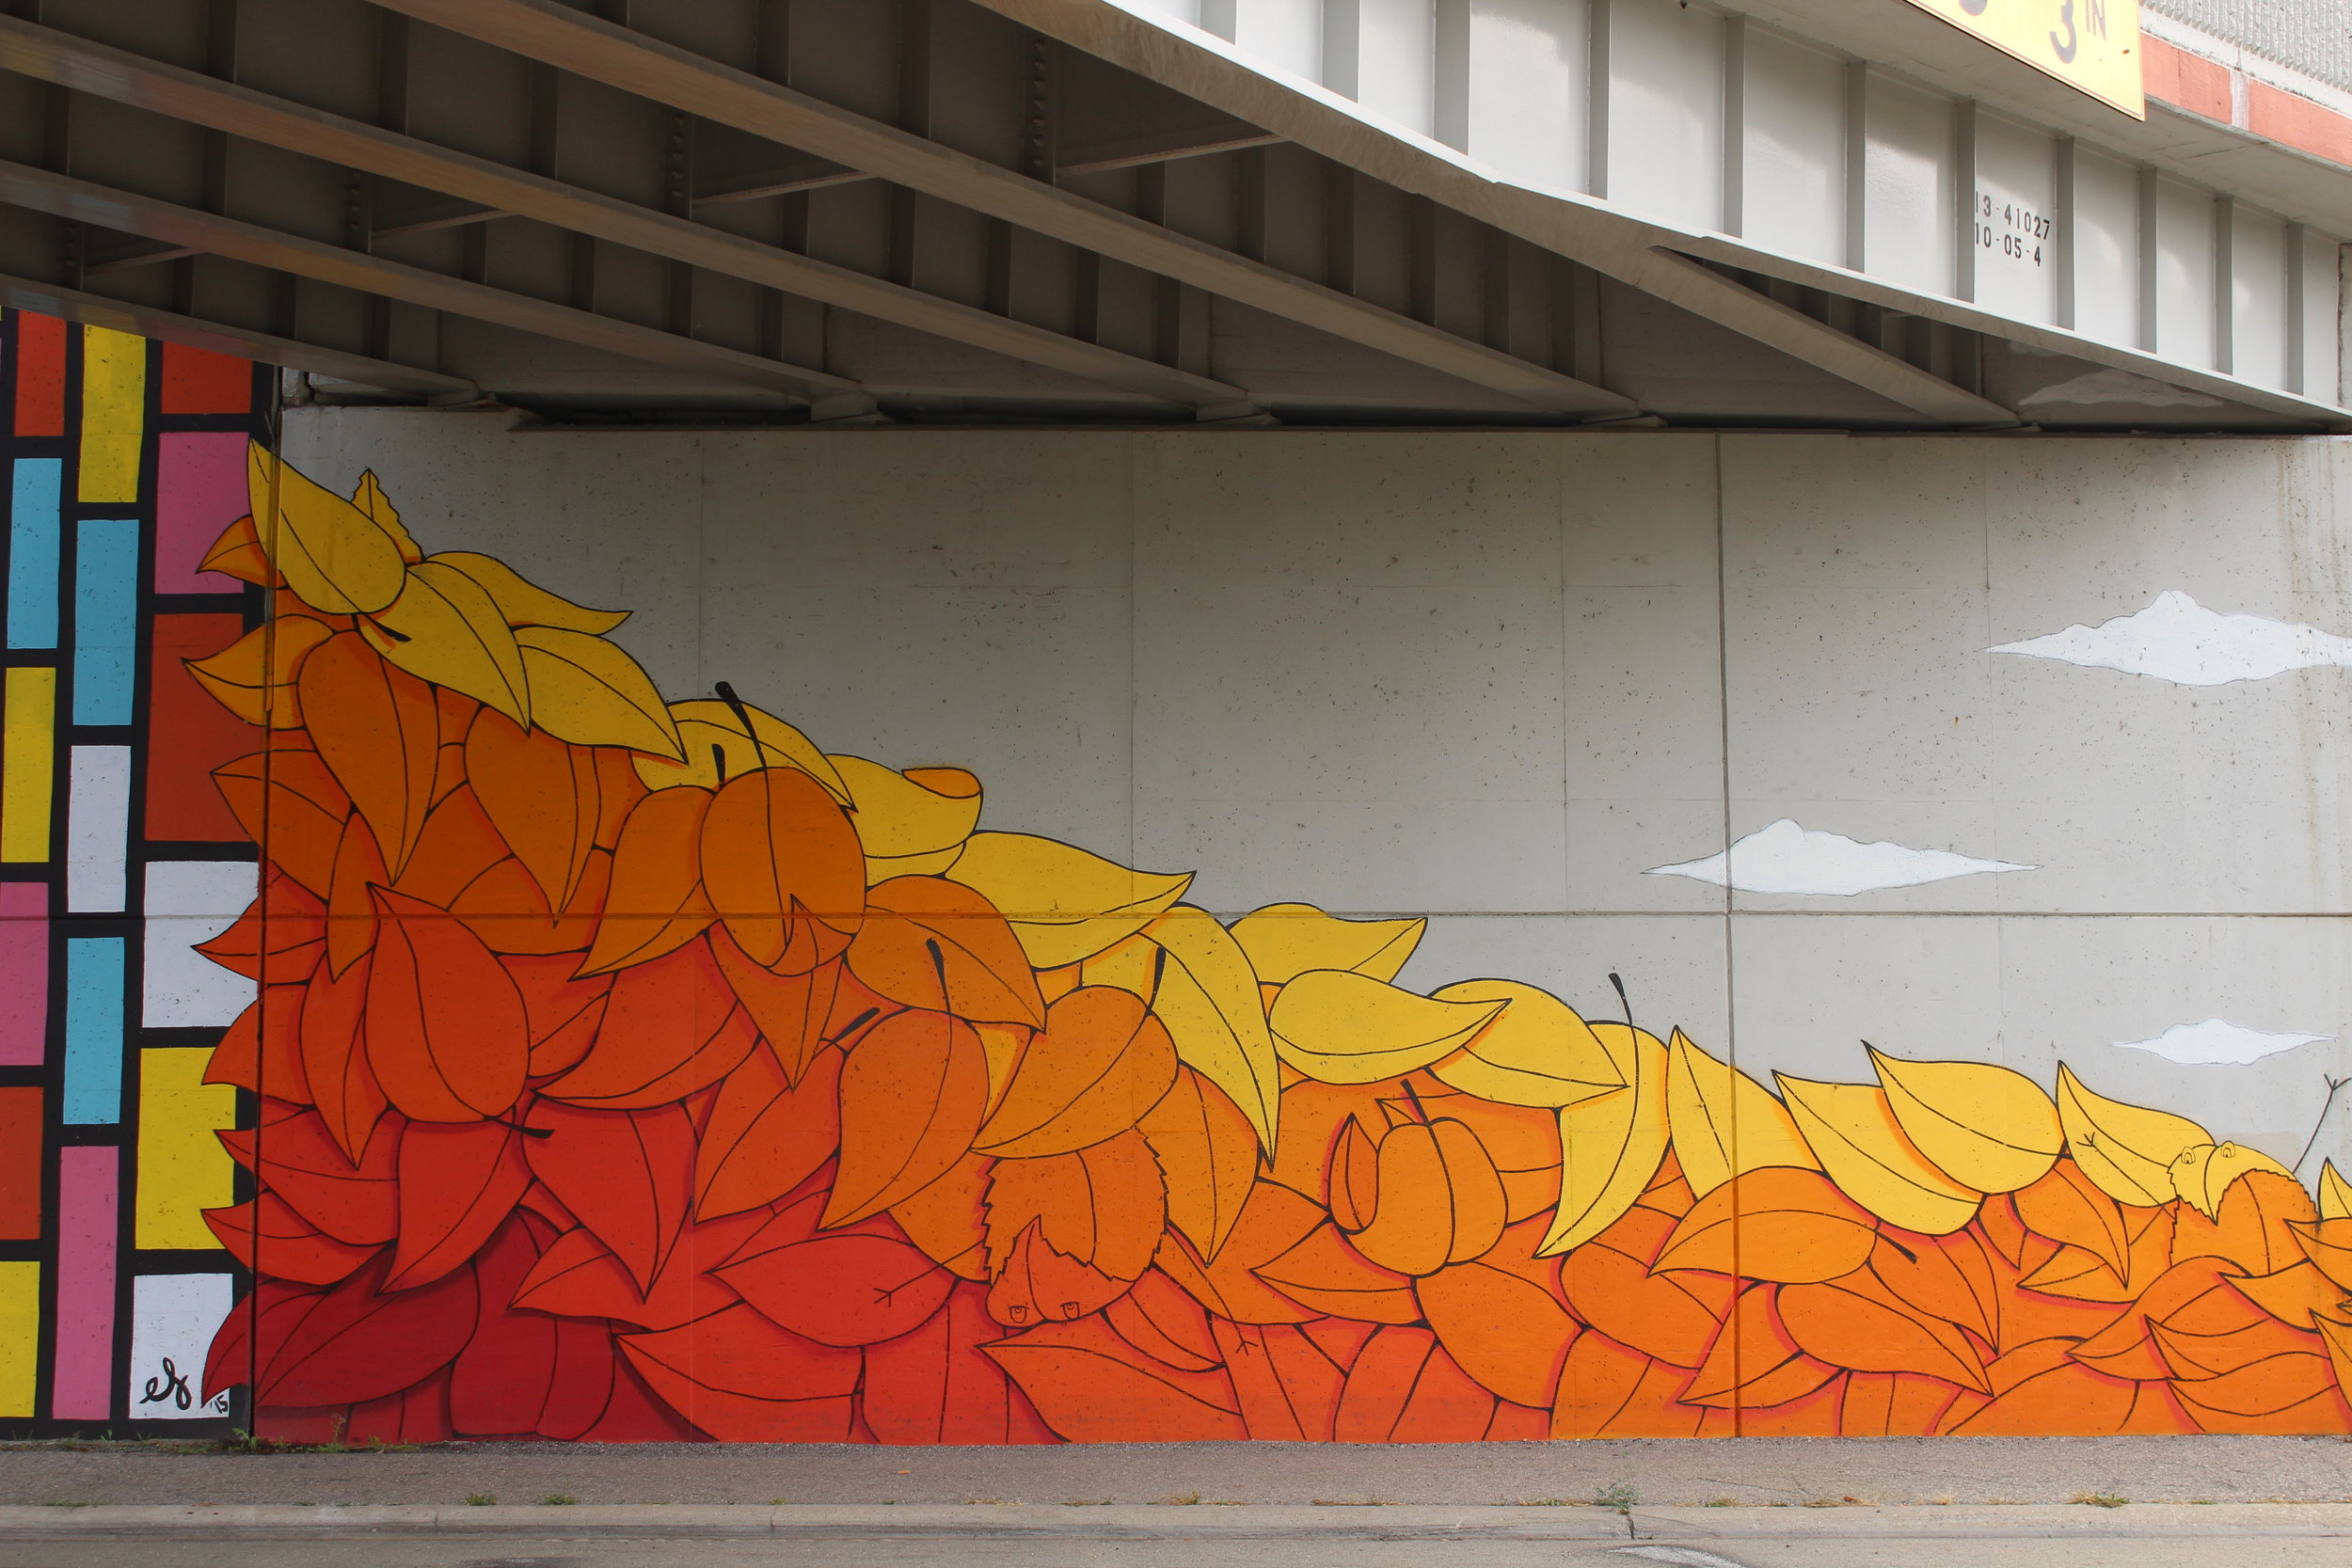 Leaf detail of retaining wall mural